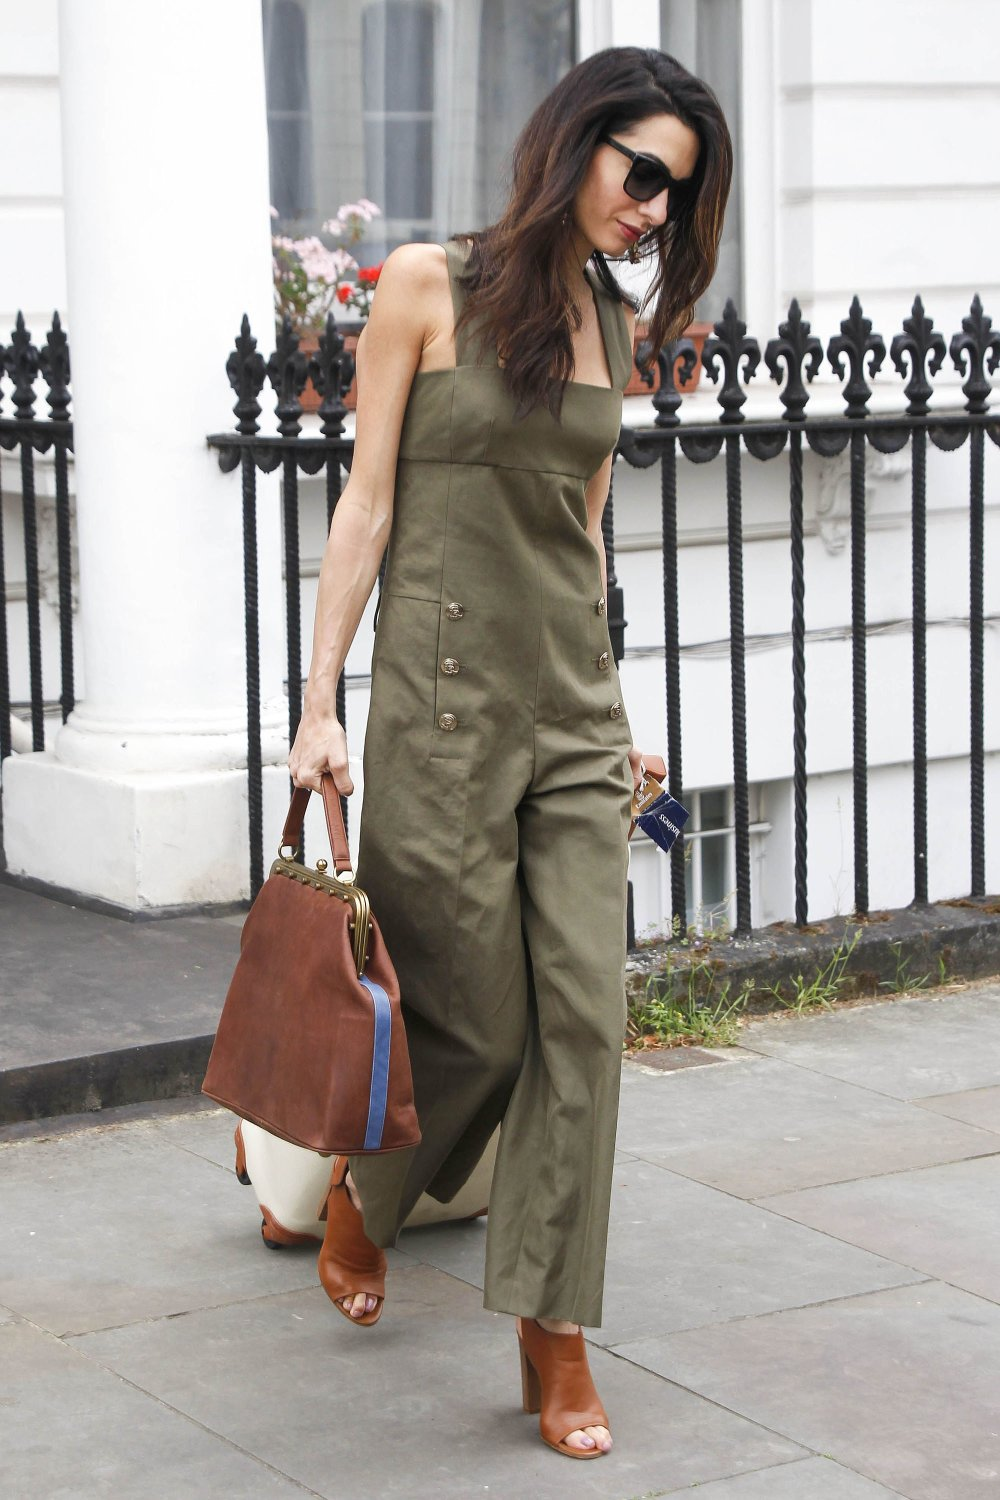 Casual-Friday-Tailored-Jumpsuit-Can-Layered-Over-Tee.jpg.pagespeed.ce.tijdJwDl38